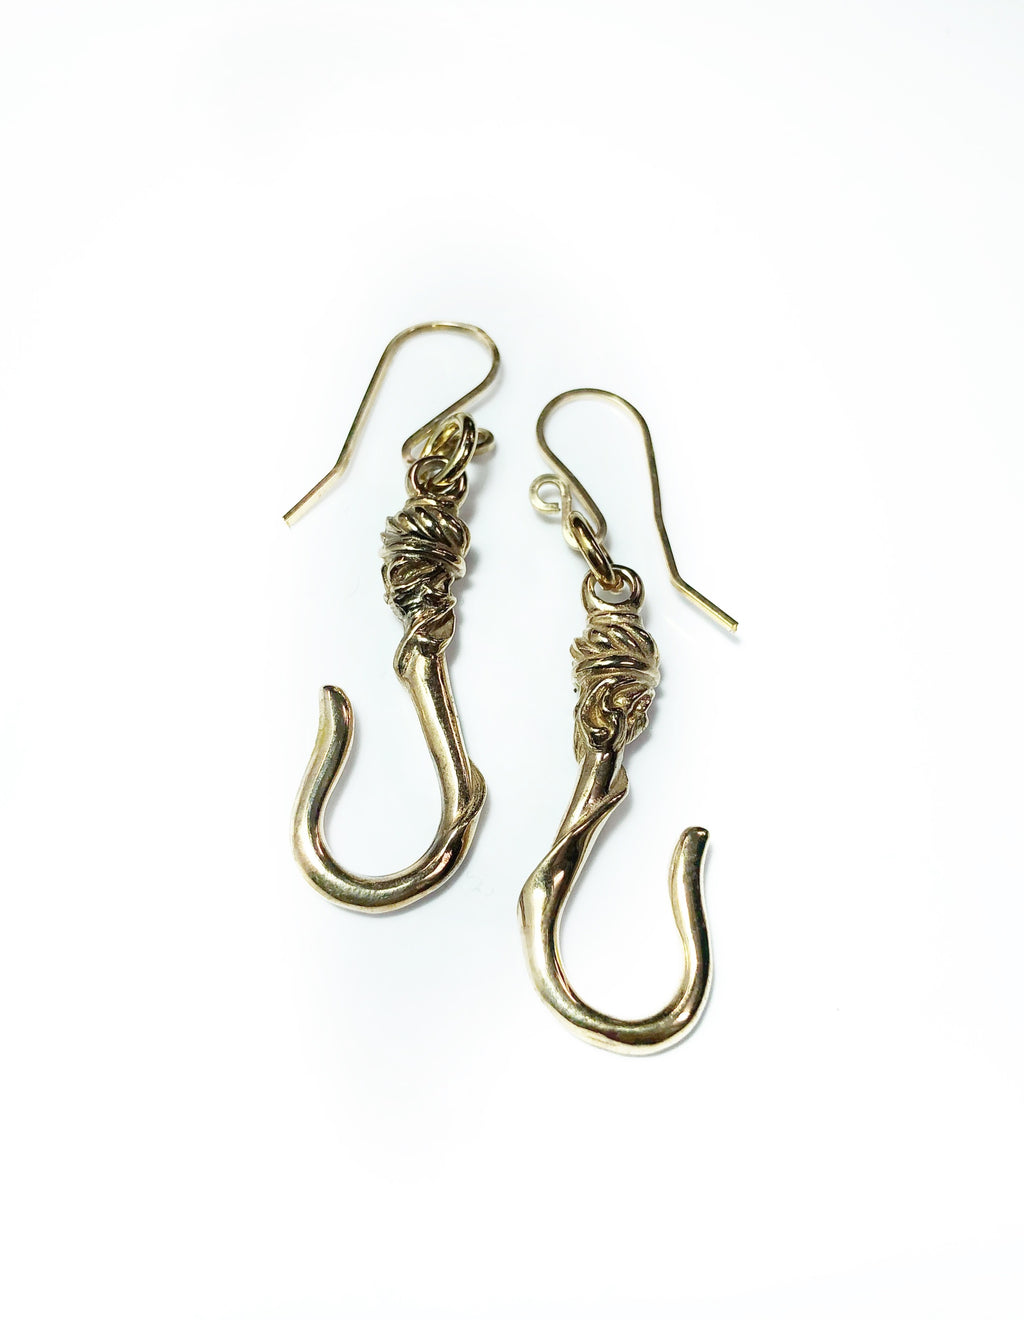 Belloza Earrings - Terry Schiefer